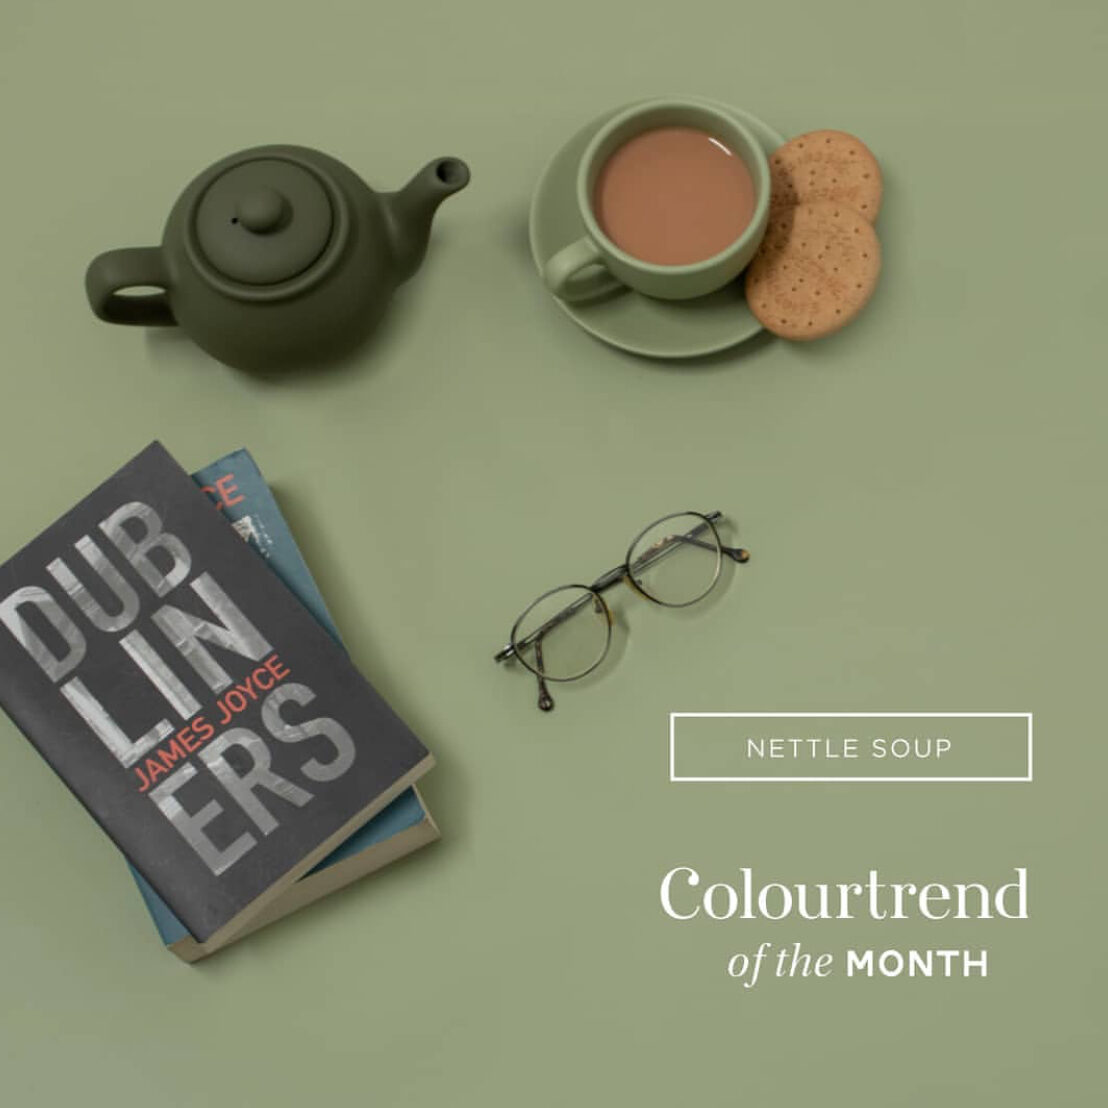 Colourtrend color of the month March 2020